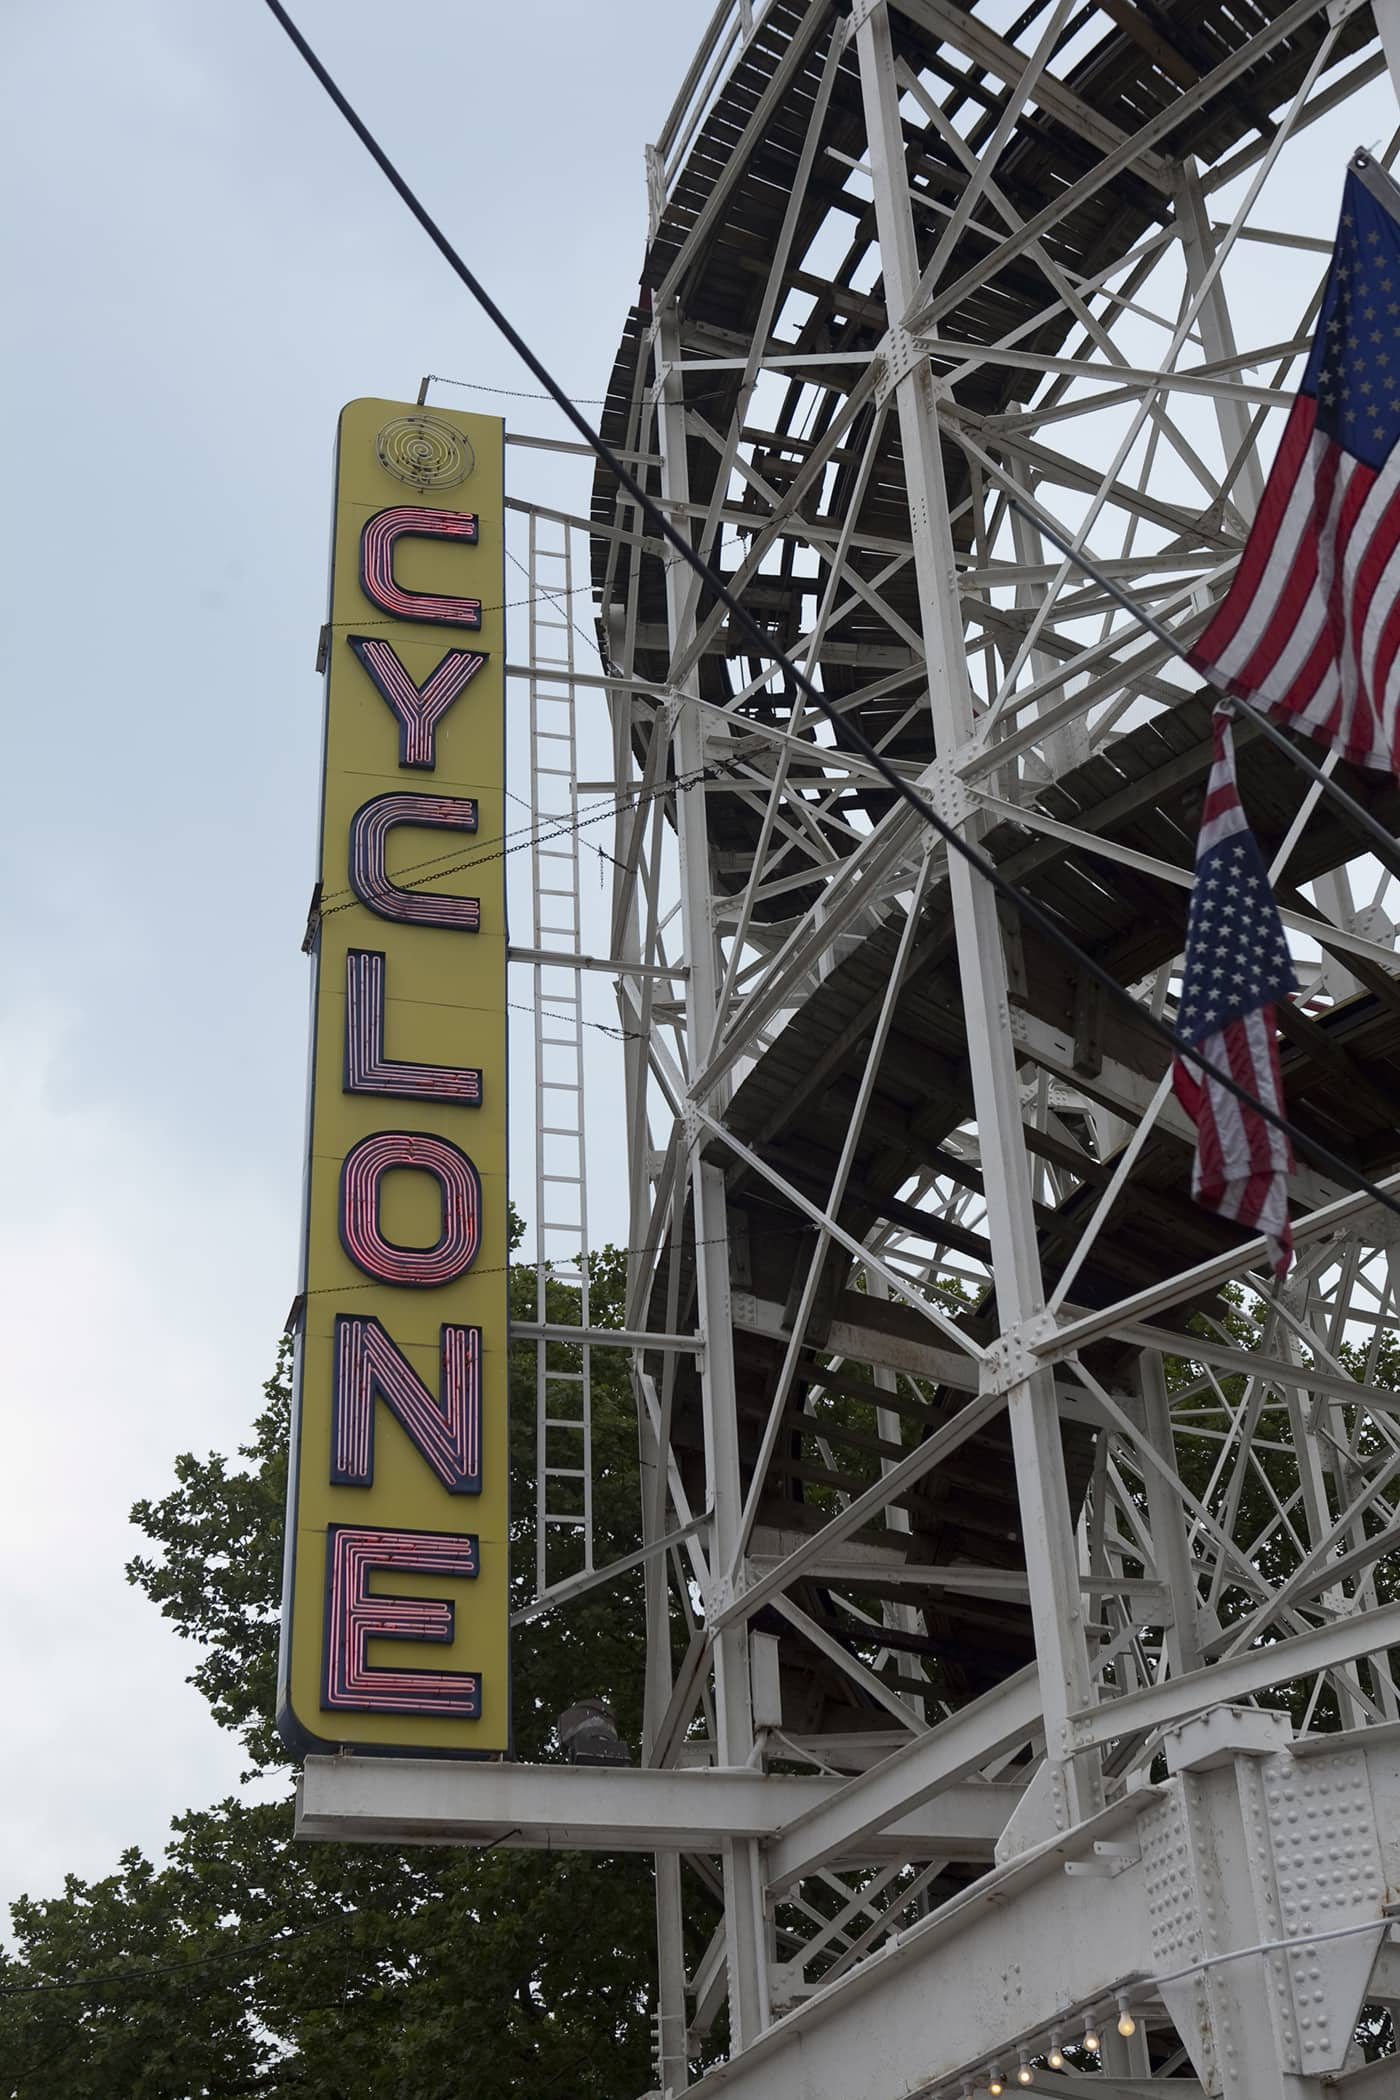 The Cyclone on Coney Island.